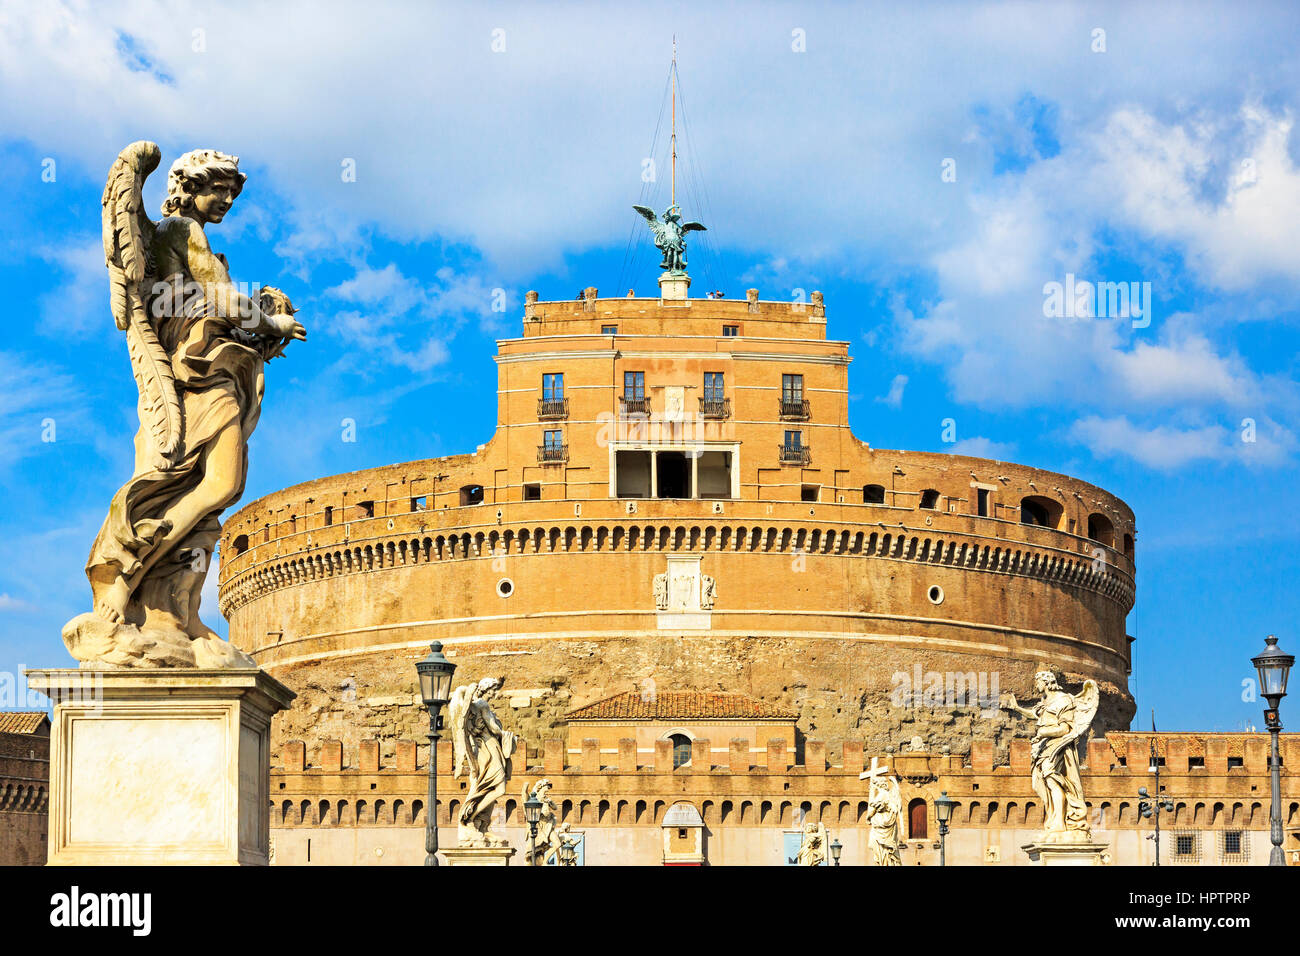 Angels on the bridge Ponte Sant Angelo framing the Castle Sant Angelo, in parco Adriano district, Rome, Italy - Stock Image